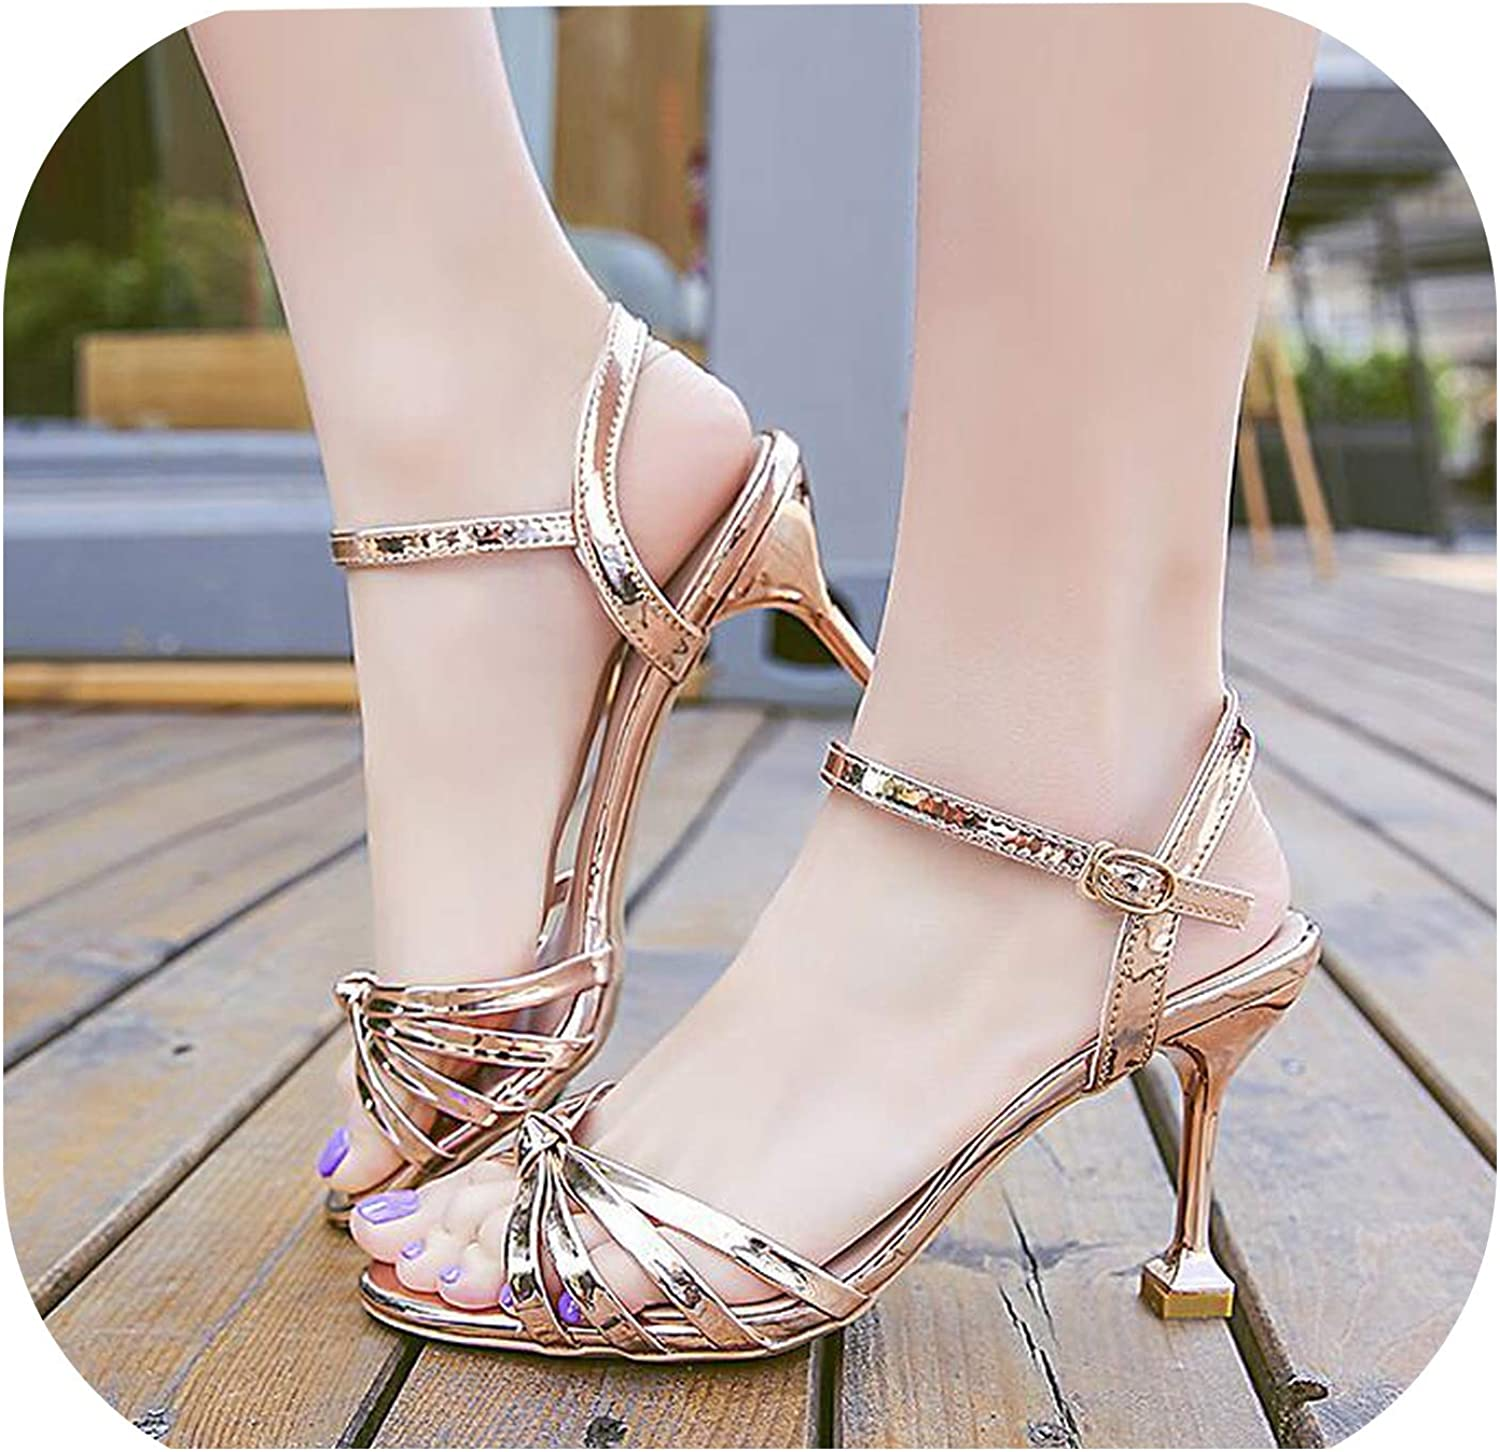 Shine-shine Simple High-Heels Angle Buckle Open-Toed Sandals F340